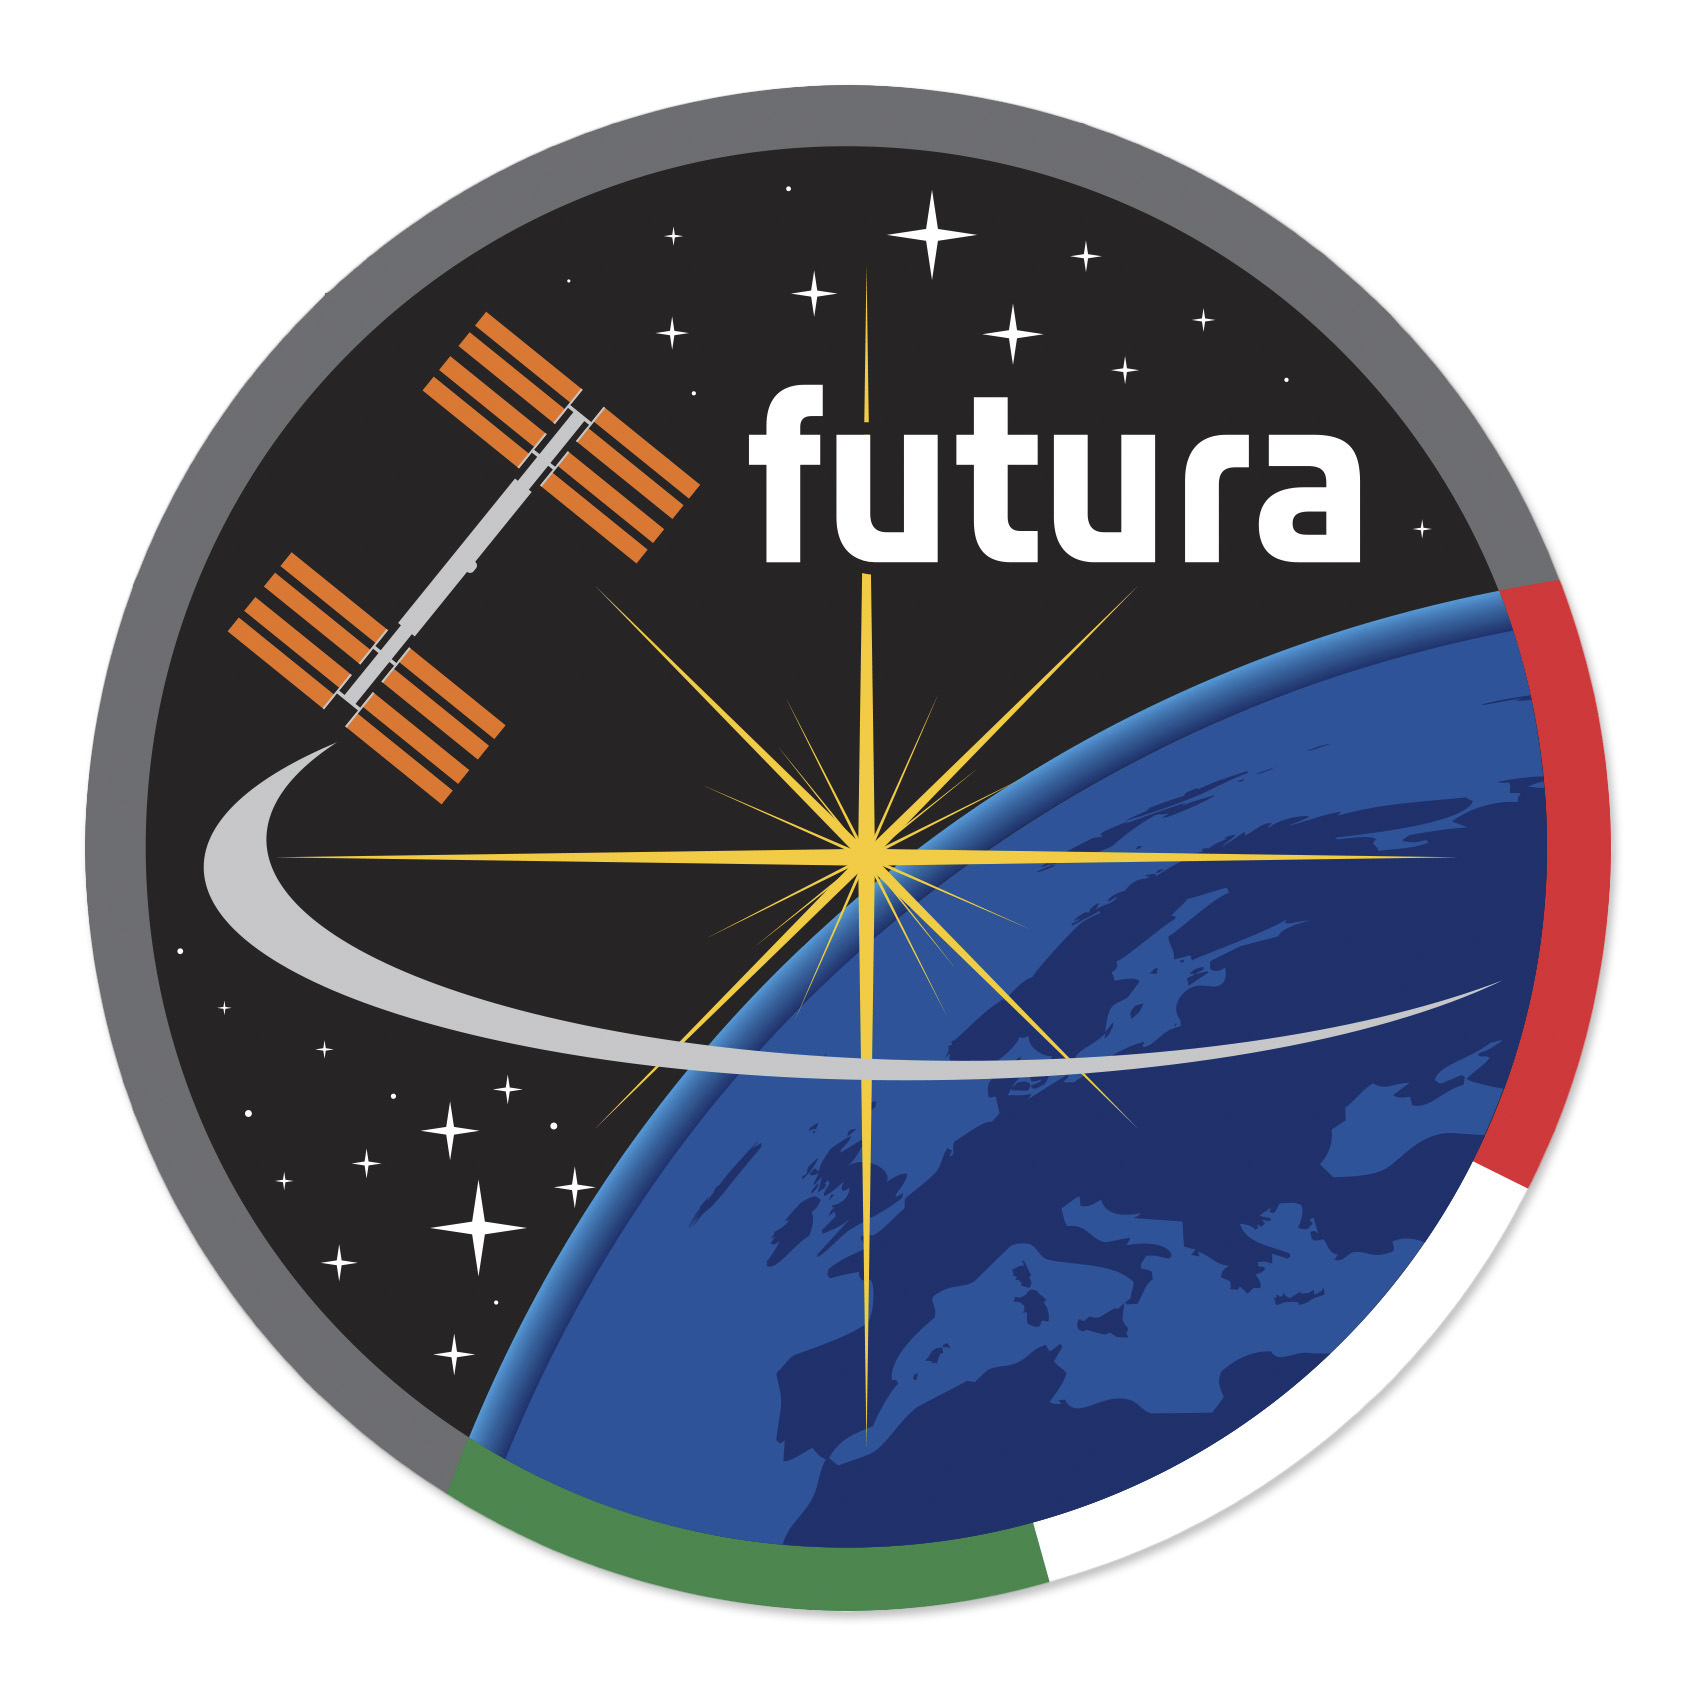 Mission Patches On Mission 4 To The International Space: Soyuz TMA-15M, Futura